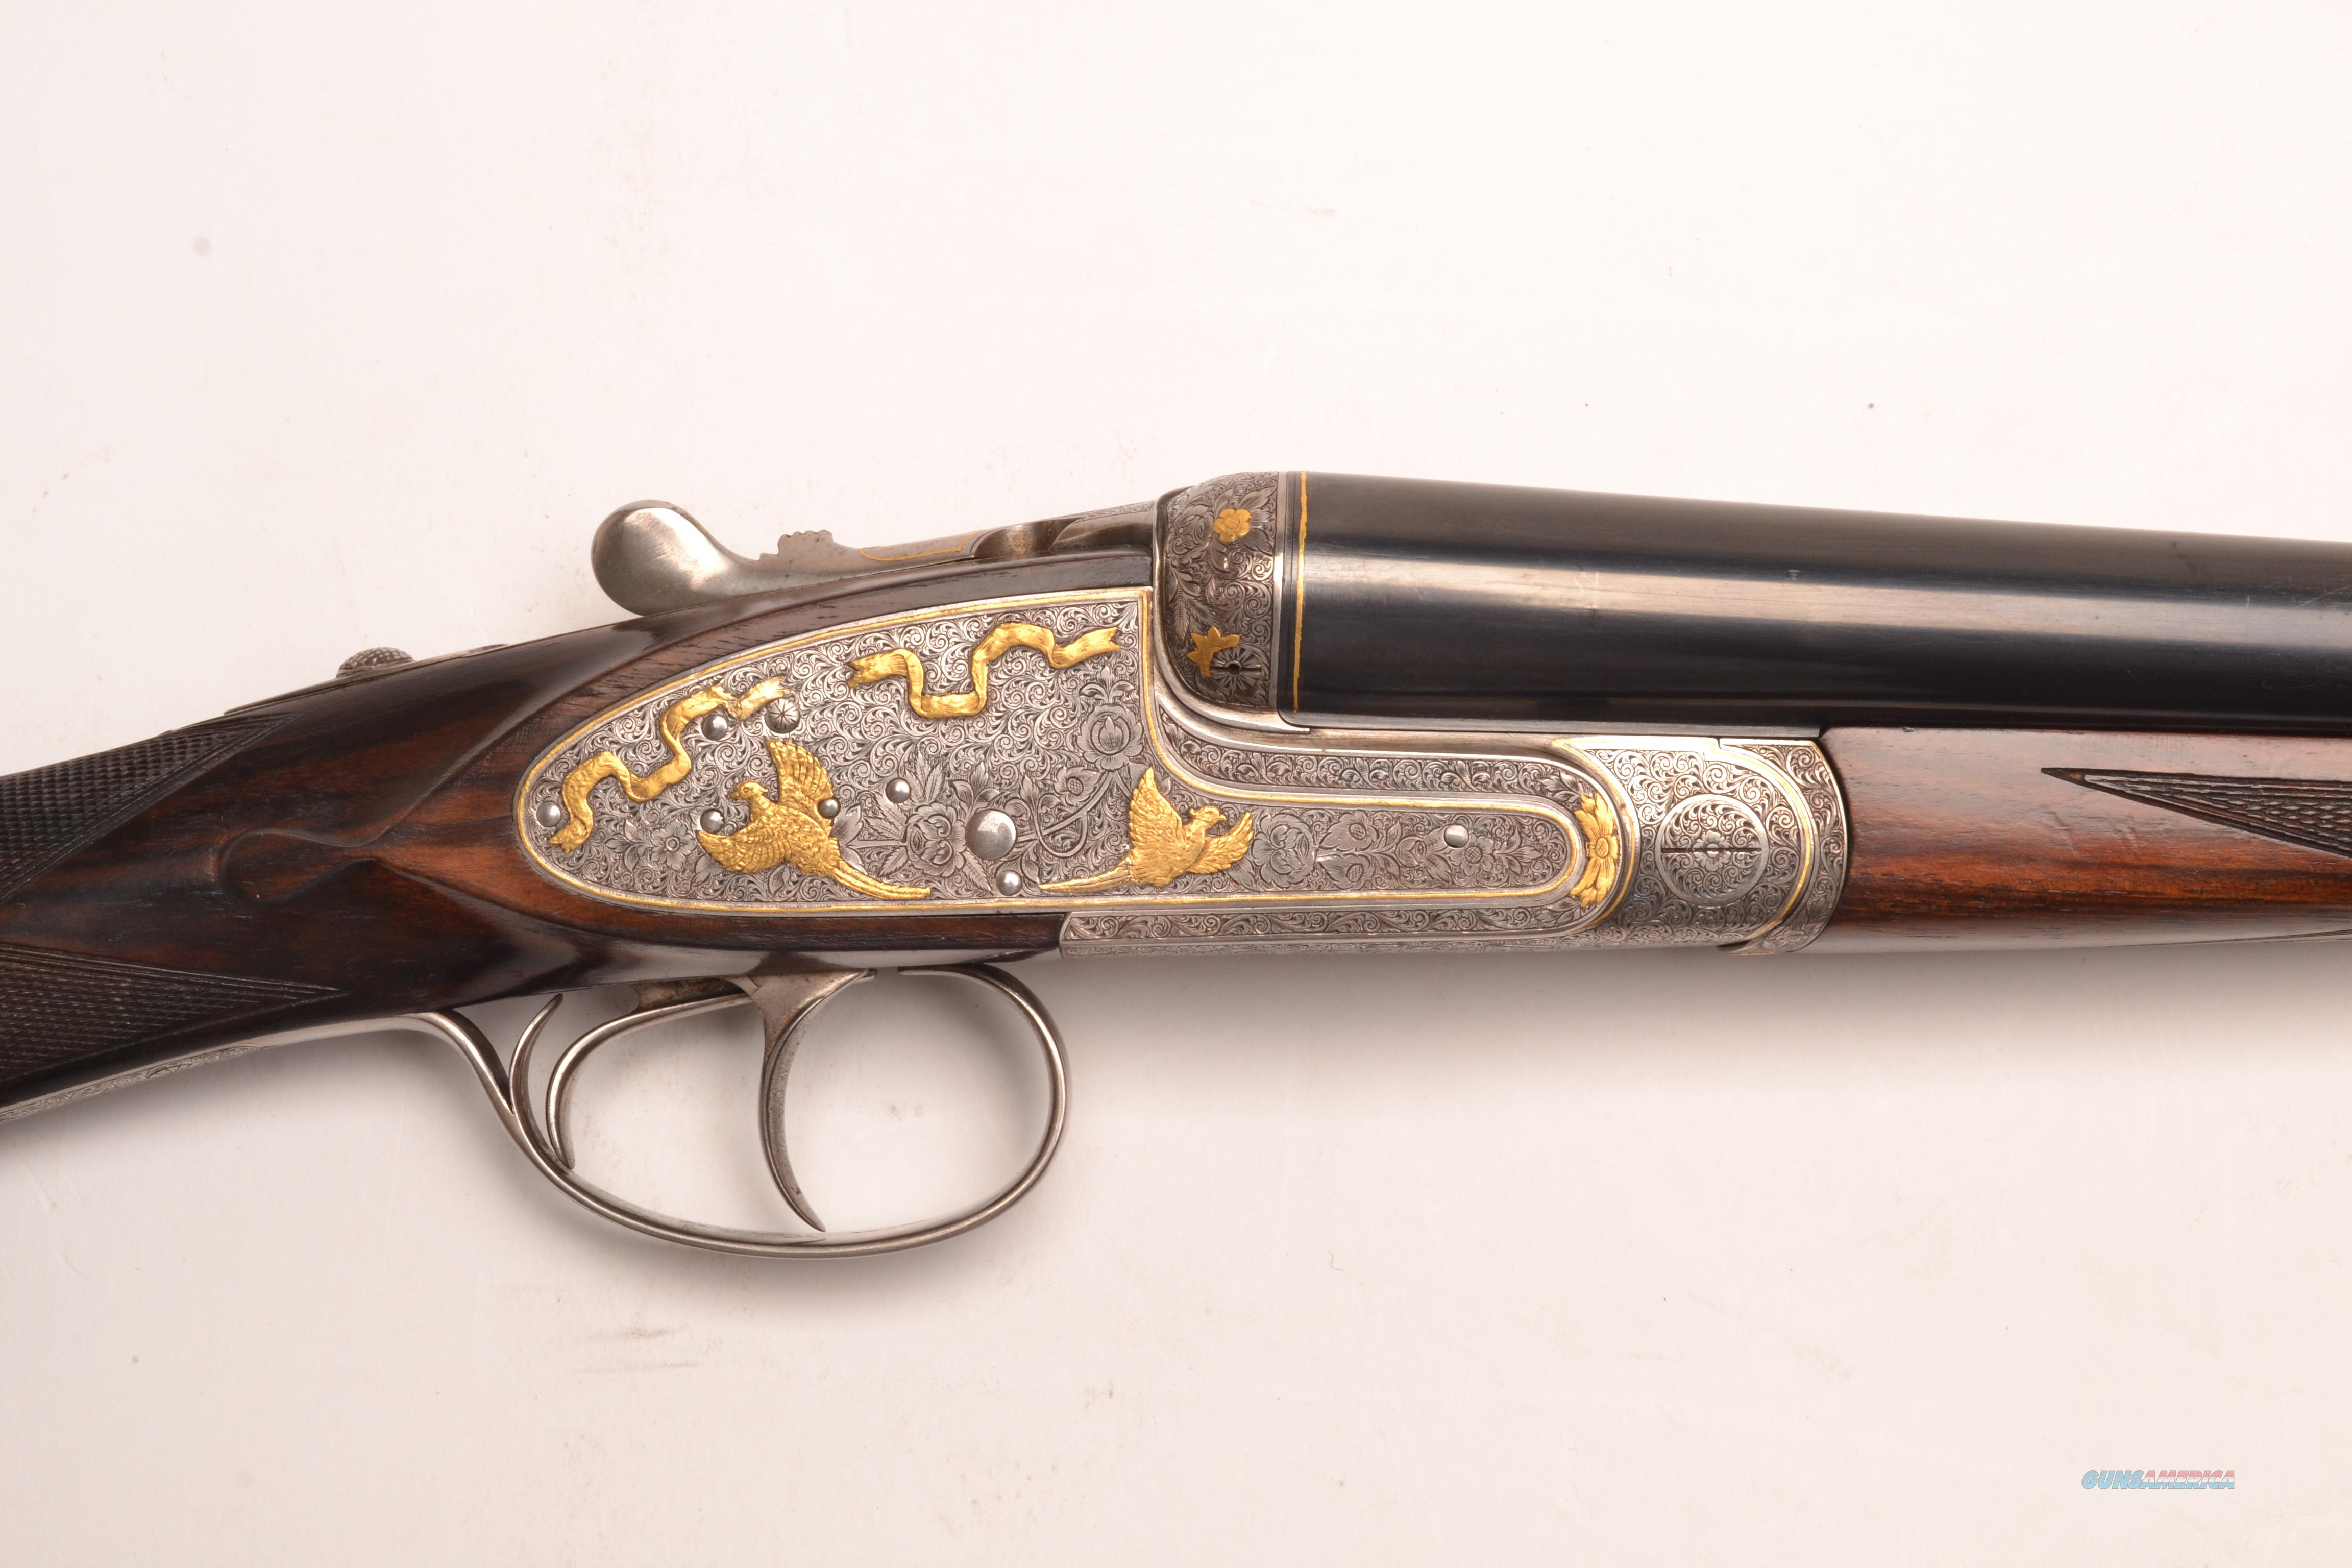 Arietta - 875, Matched Custom Pair, 12ga  Guns > Shotguns > Arrieta Shotguns